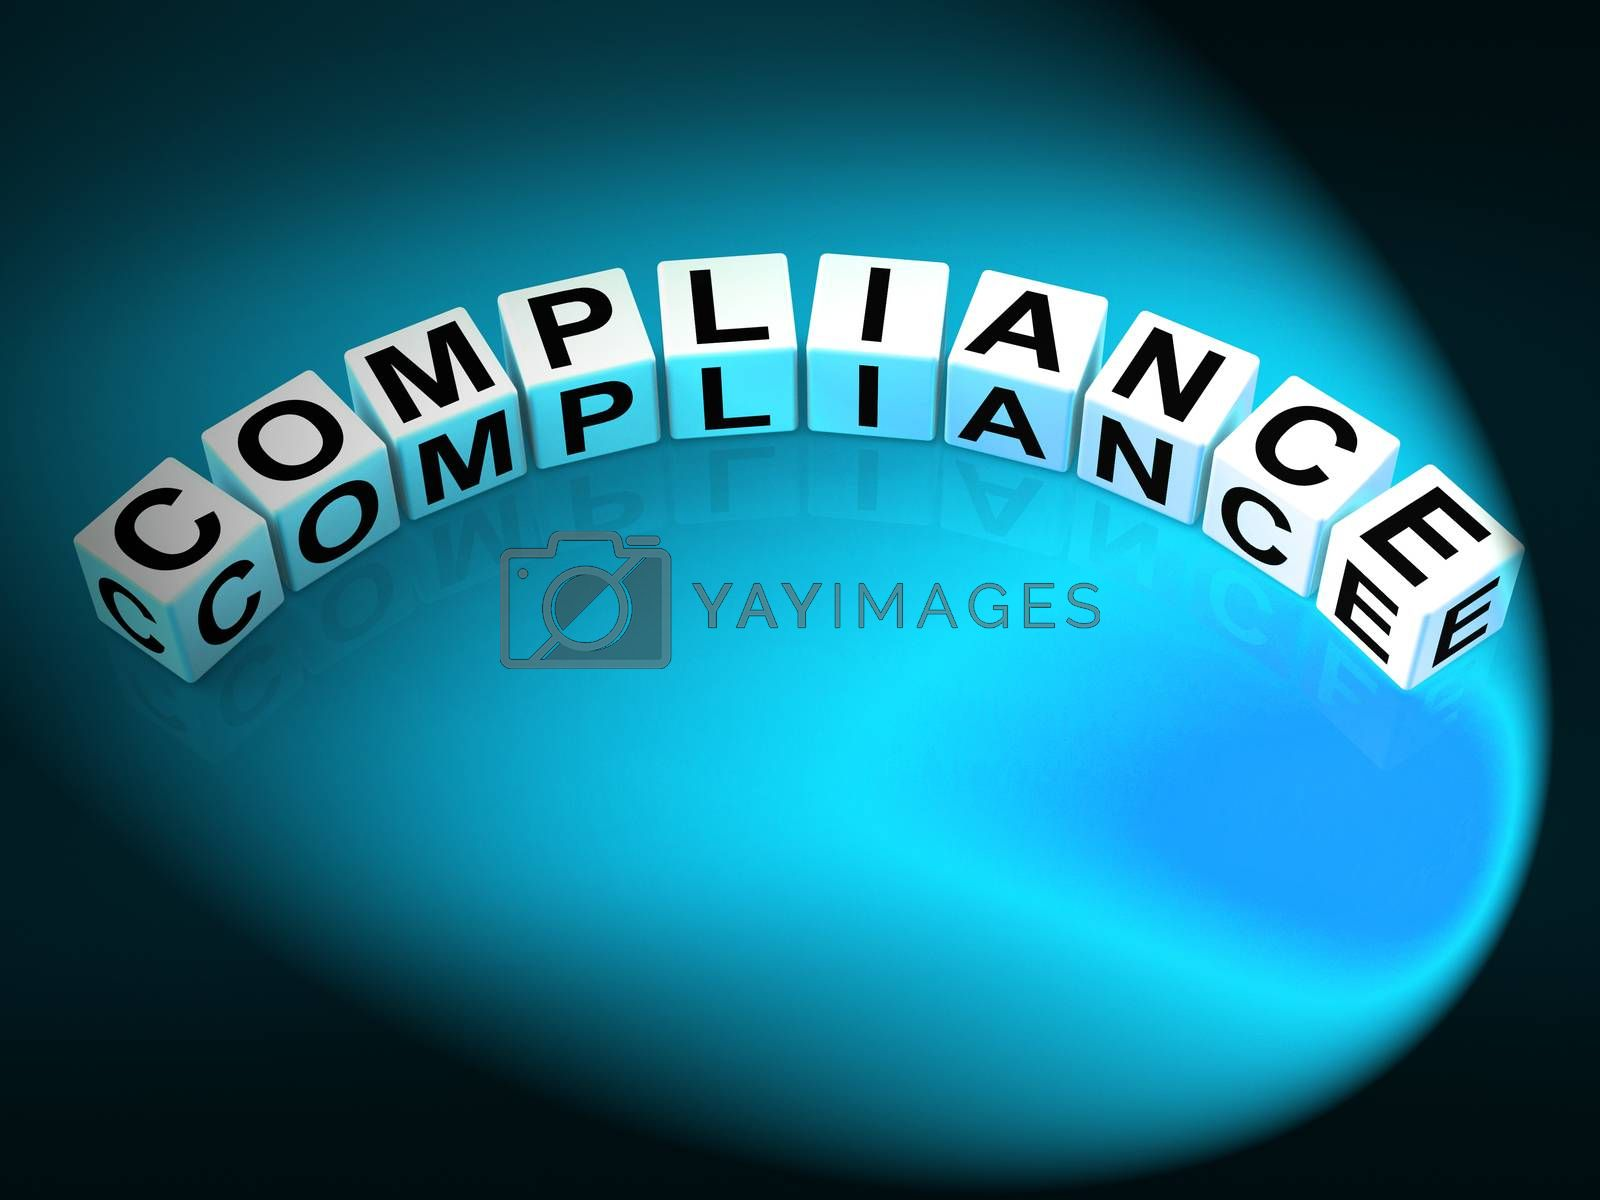 Compliance Letters Mean Agreeing To Rules And Policy by stuartmiles